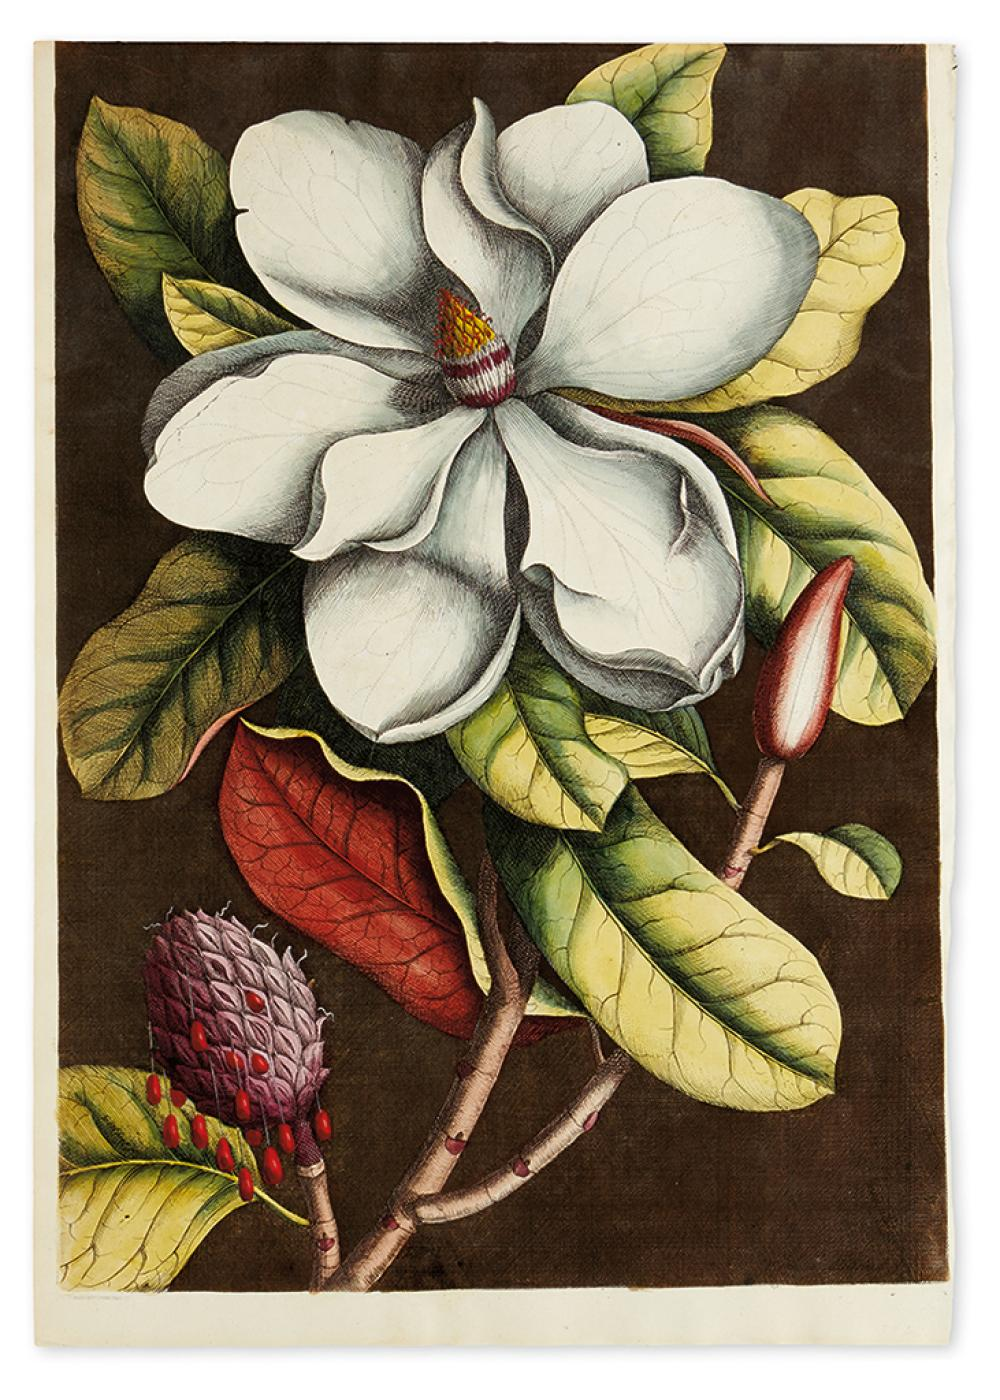 CATESBY, MARK; and EHRET, GEORG. Magnolia Grandiflora.